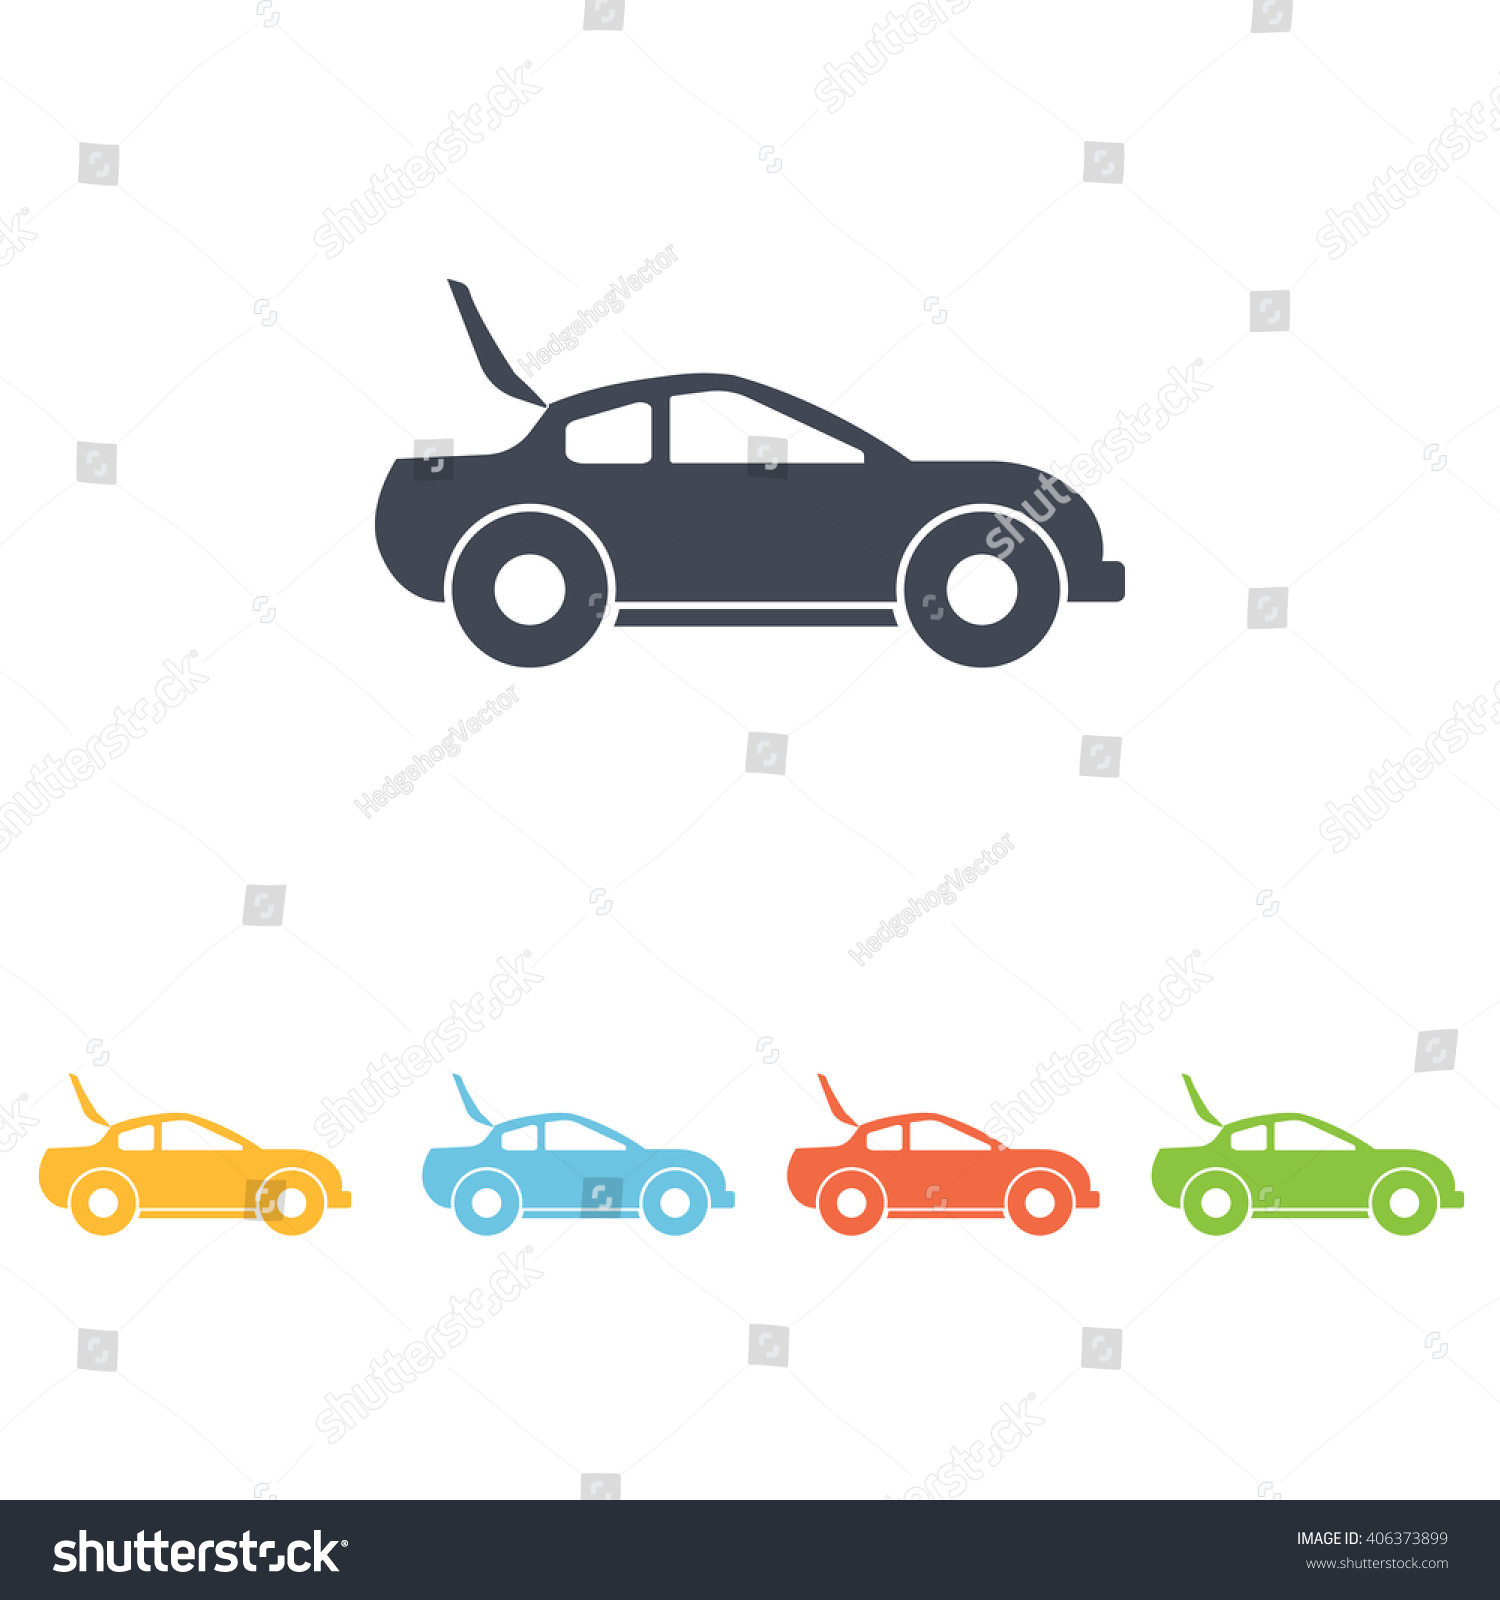 Car Open Lid Icon Stock Vector 406373899 - Shutterstock